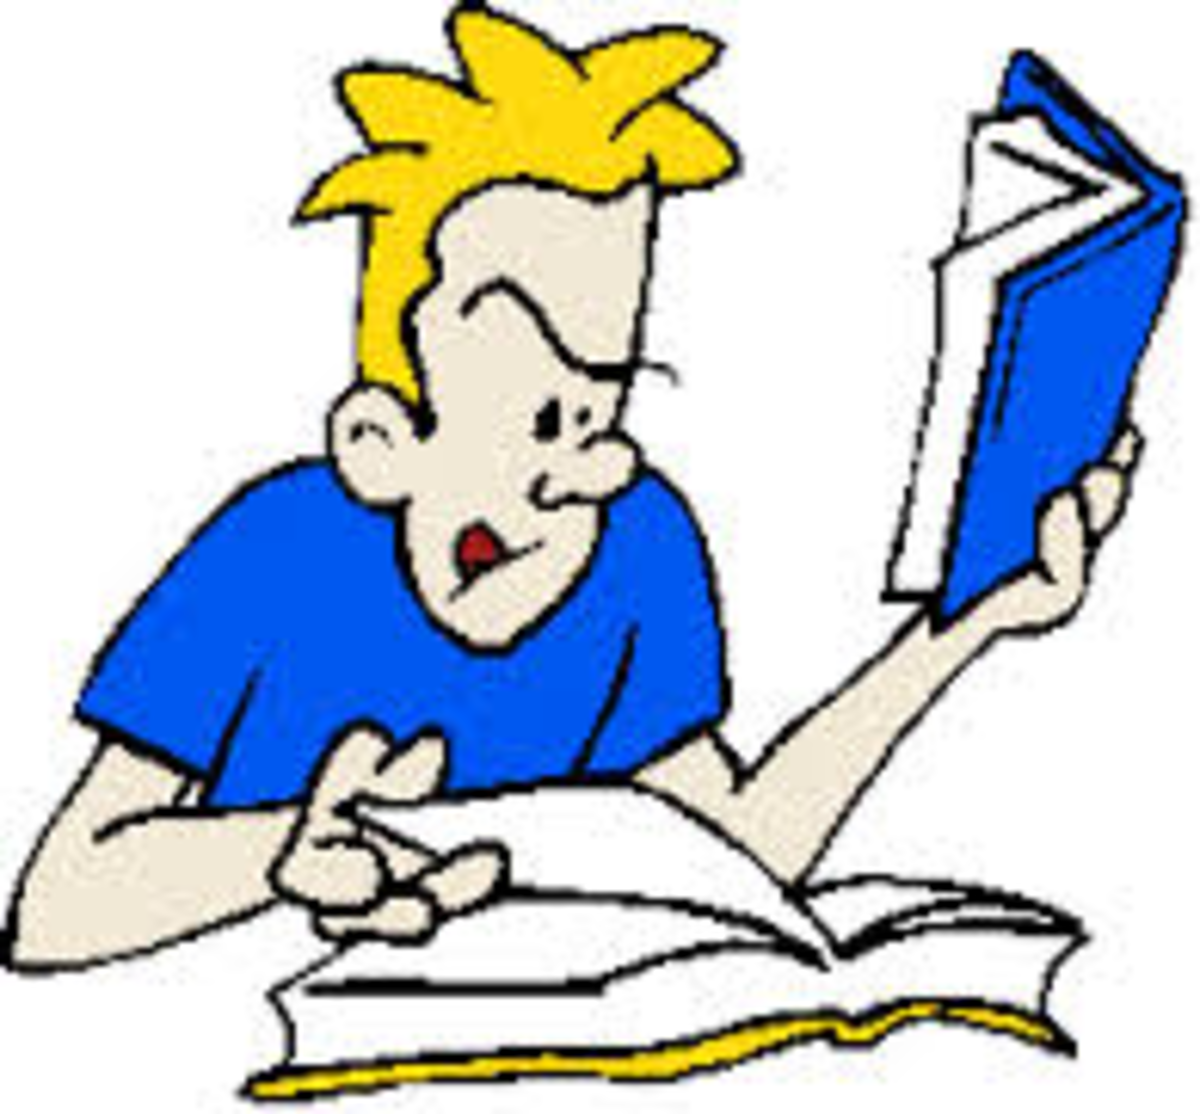 Tips on how to develop good study habits